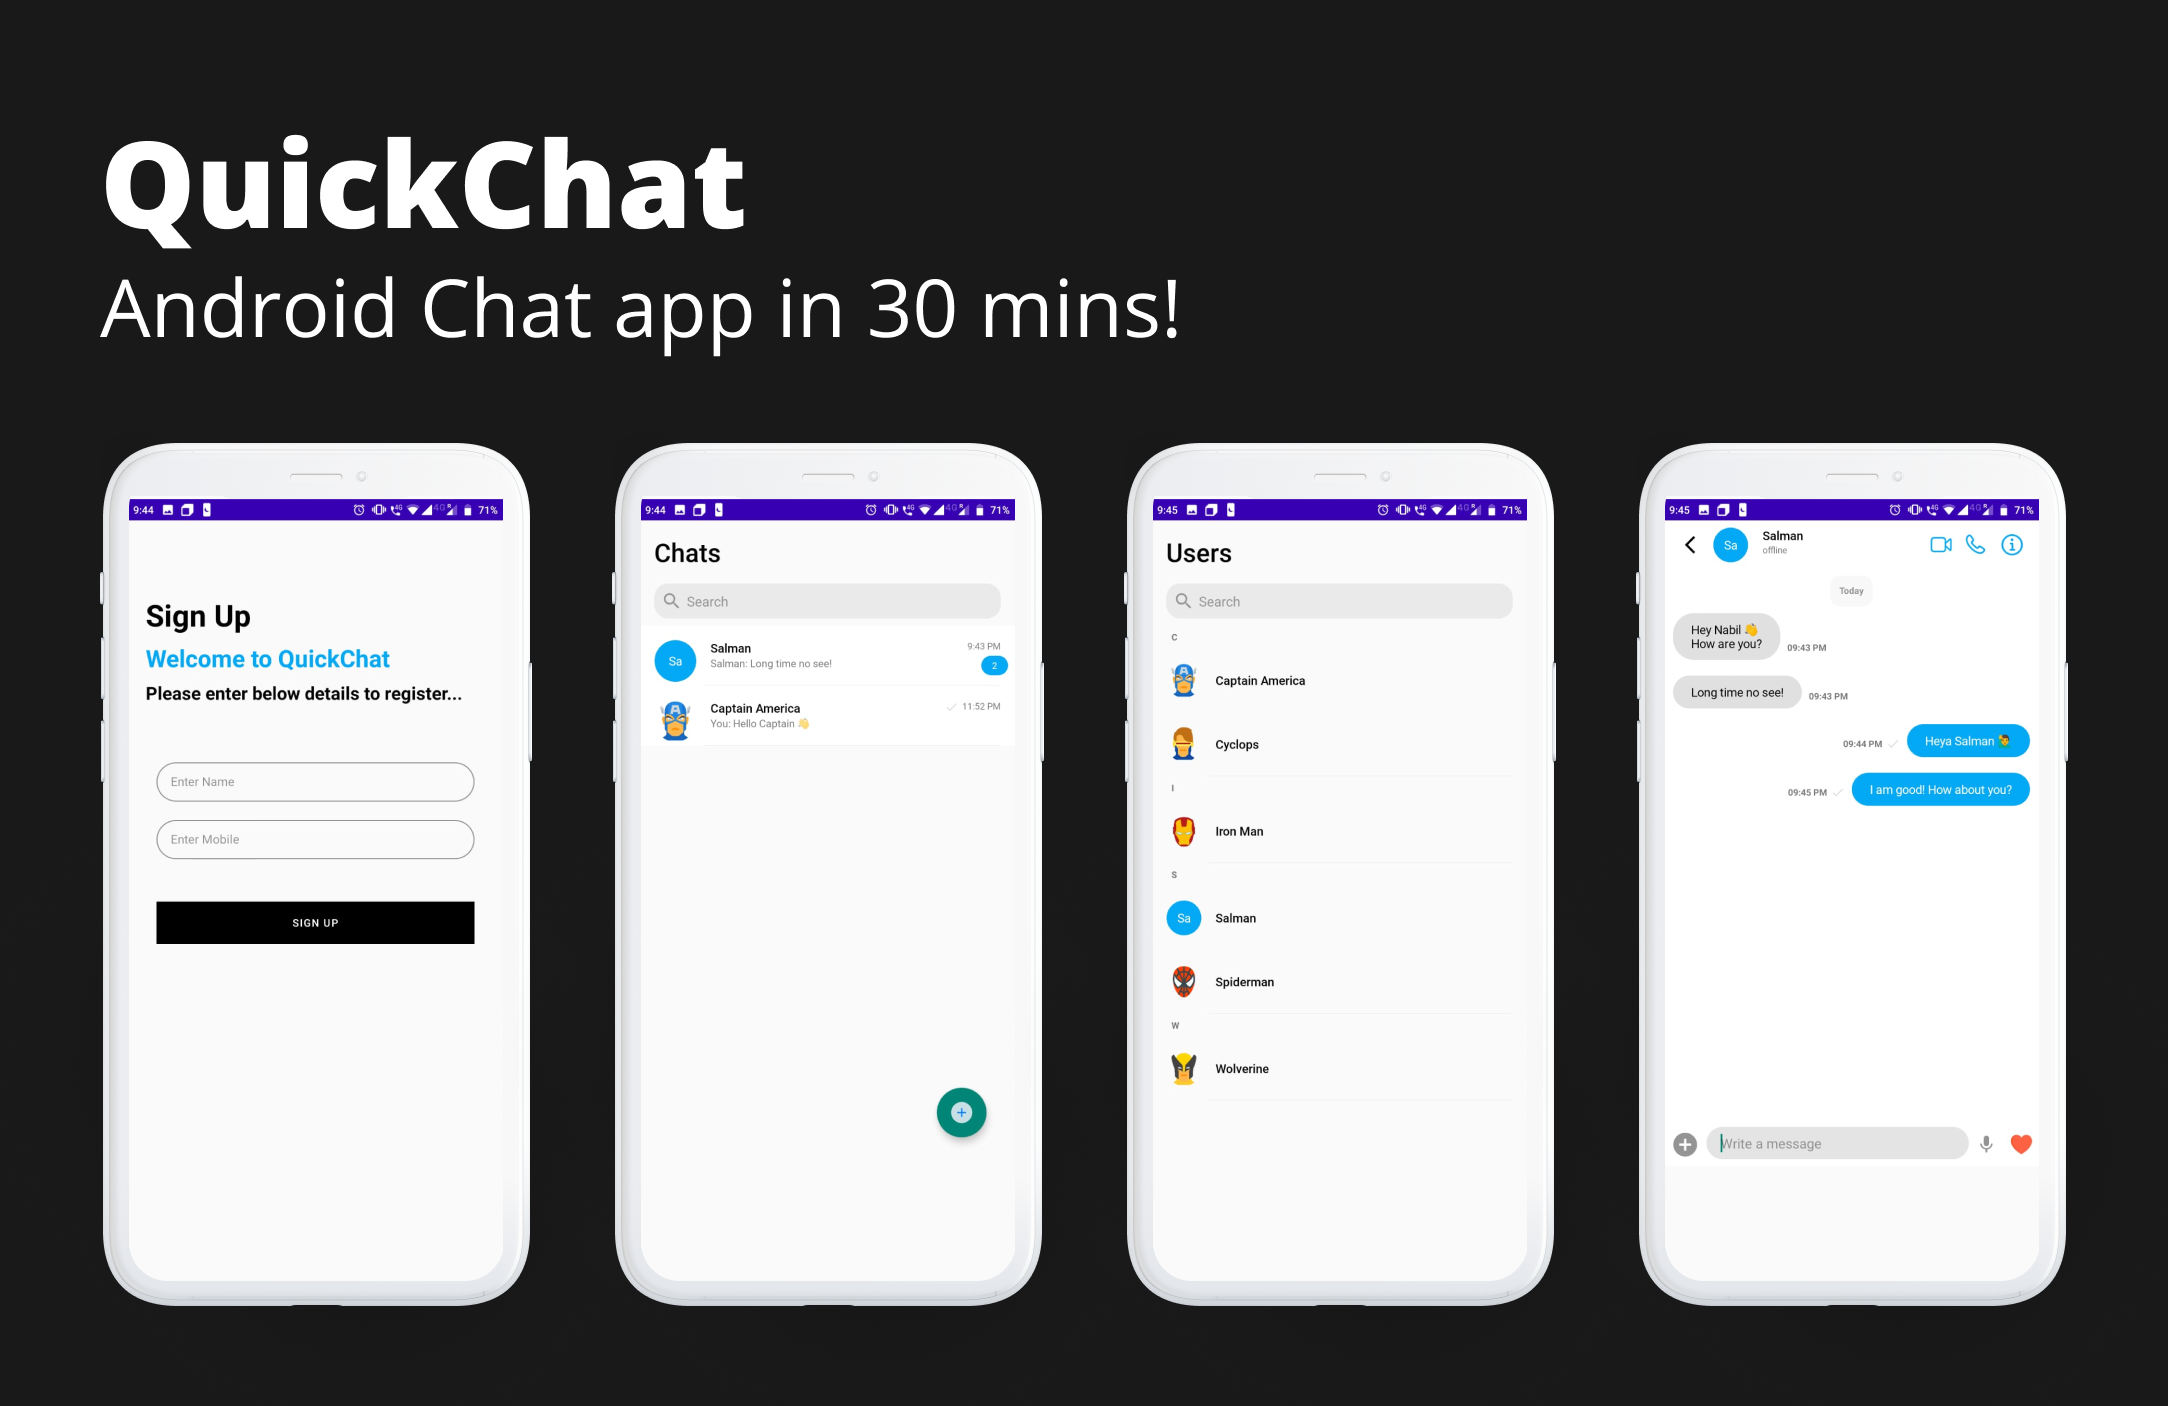 Your Android Chat App in a nutshell